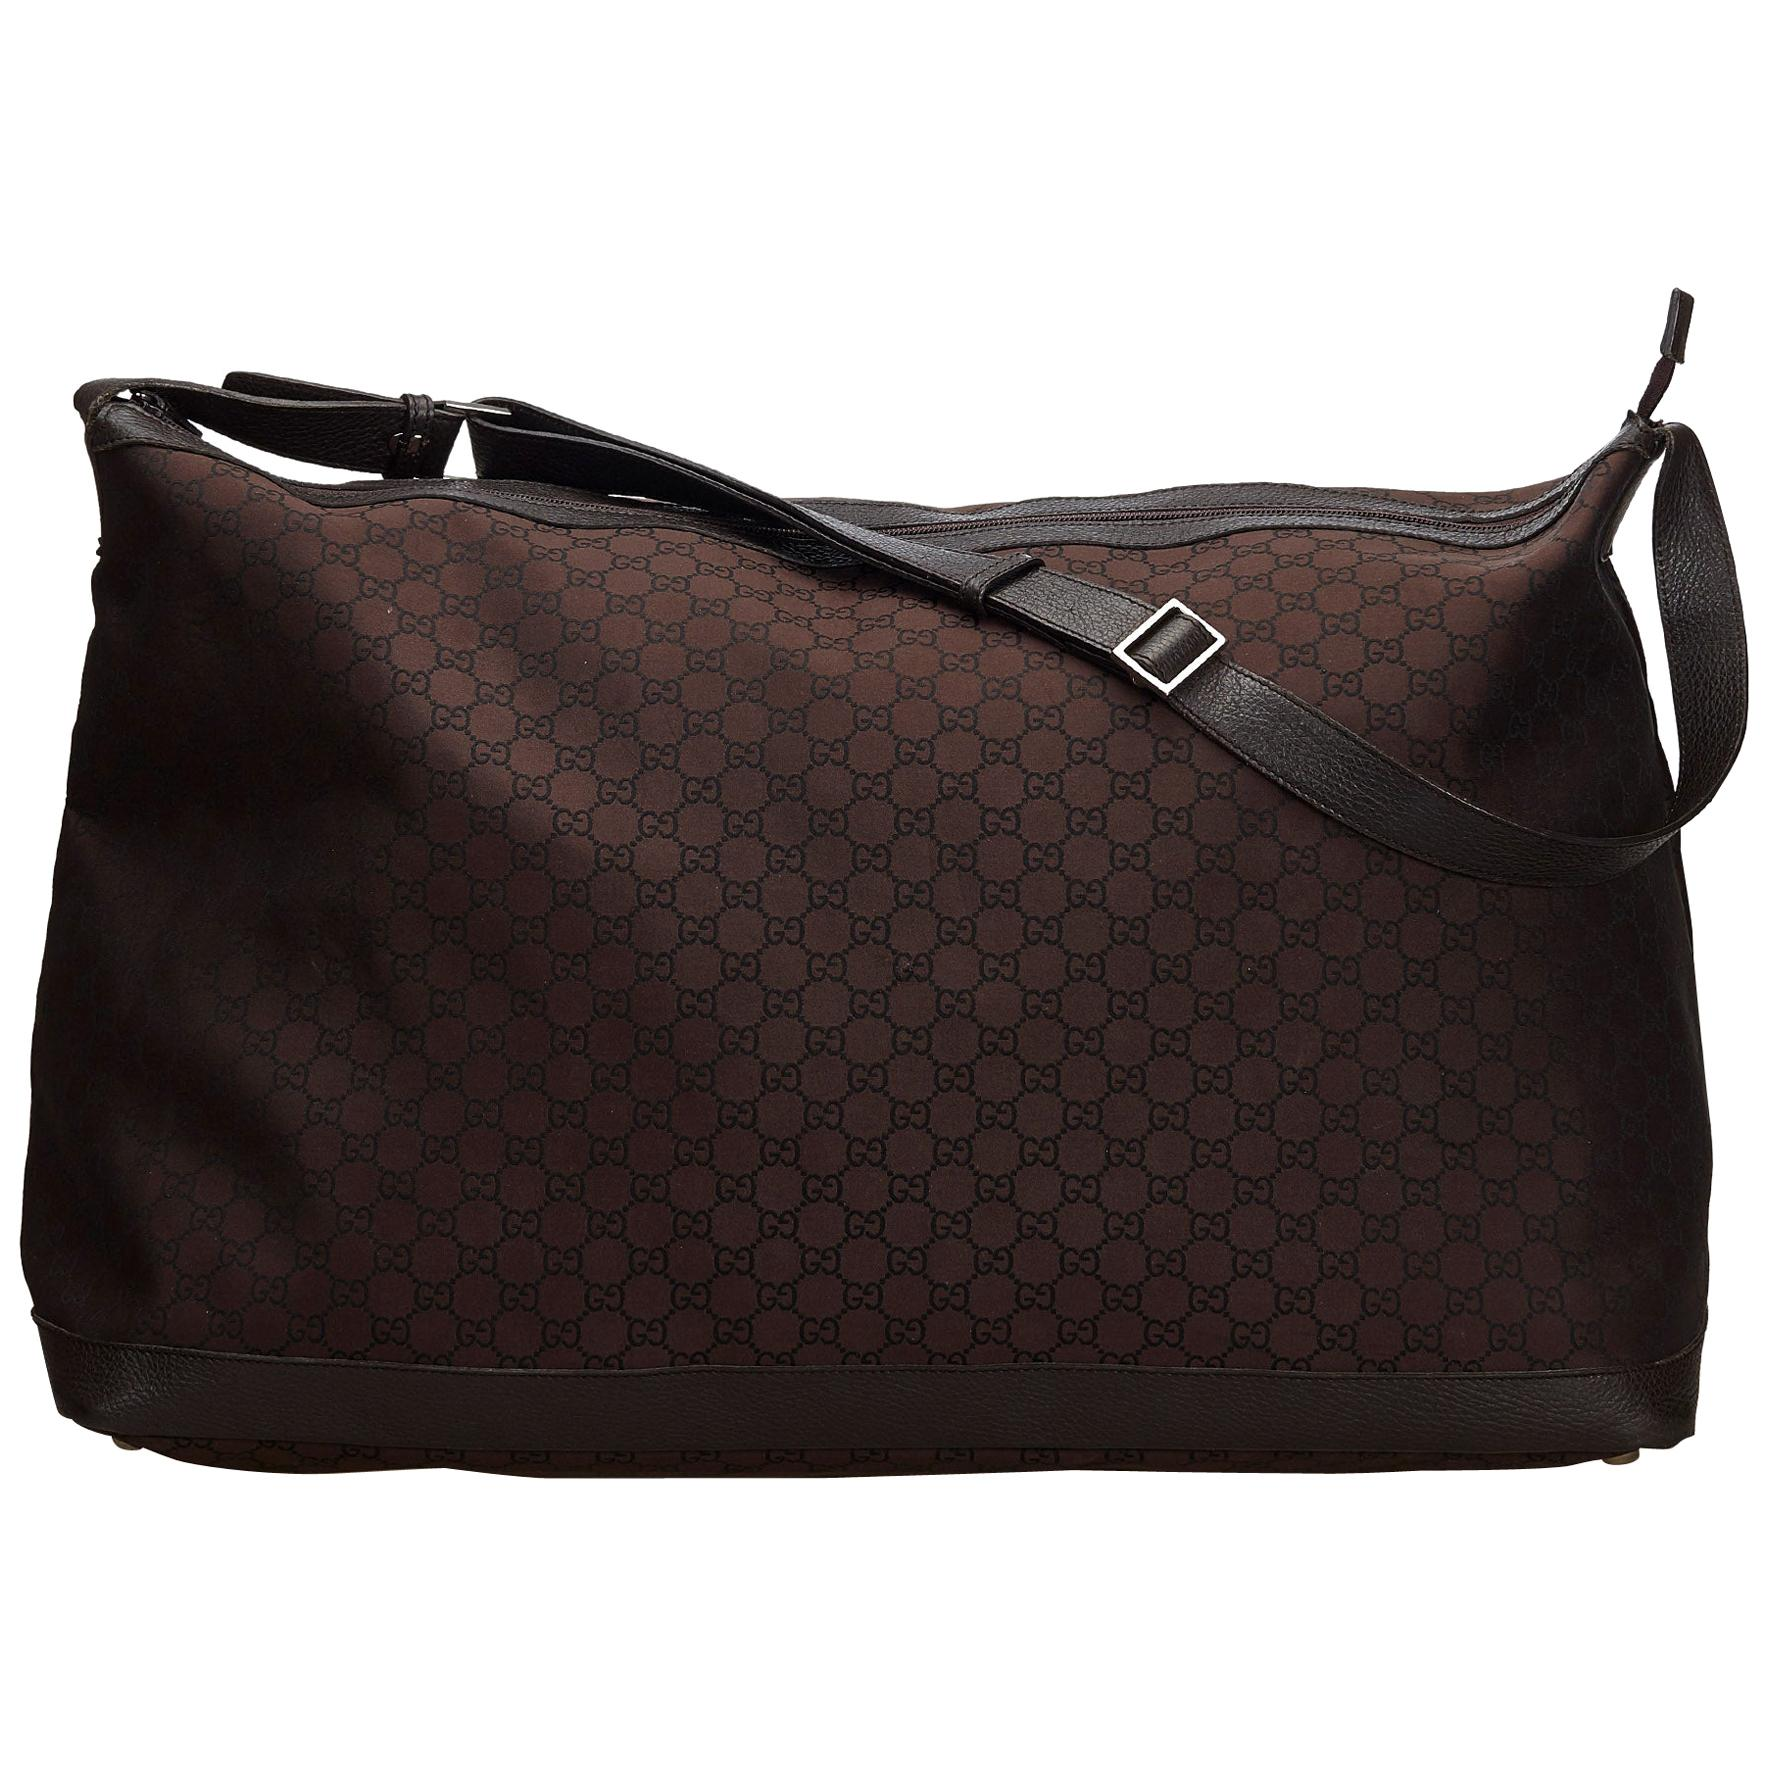 325557e5c Rare Gucci Black Monogram Canvas and Leather Train Case Doctors Bag Vanity  1970s For Sale at 1stdibs